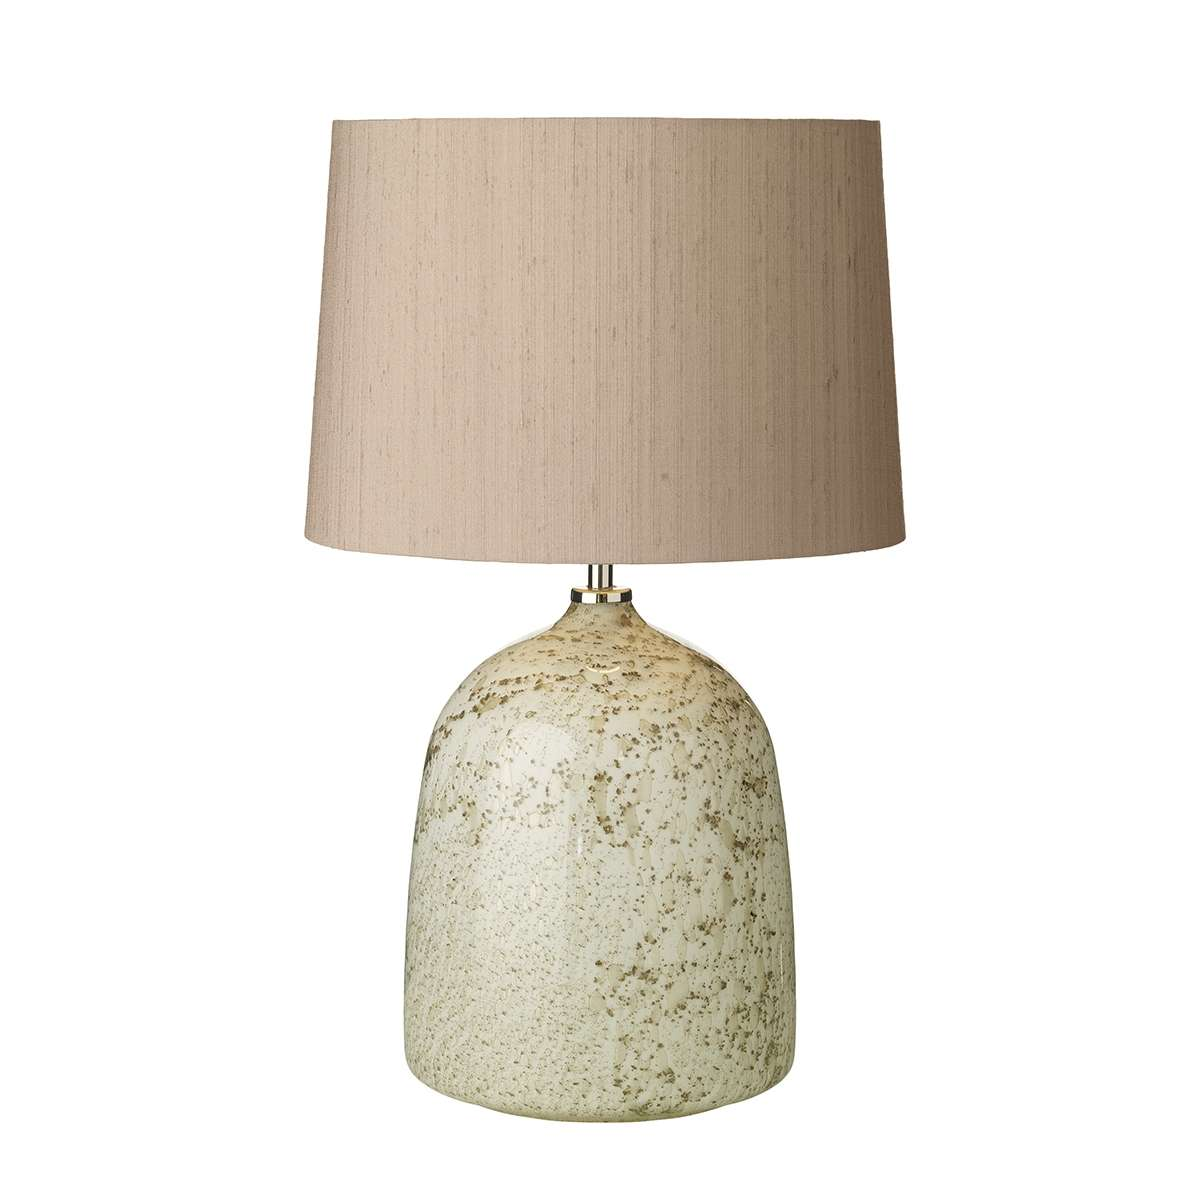 Alte Volcanic Glass Table Lamp